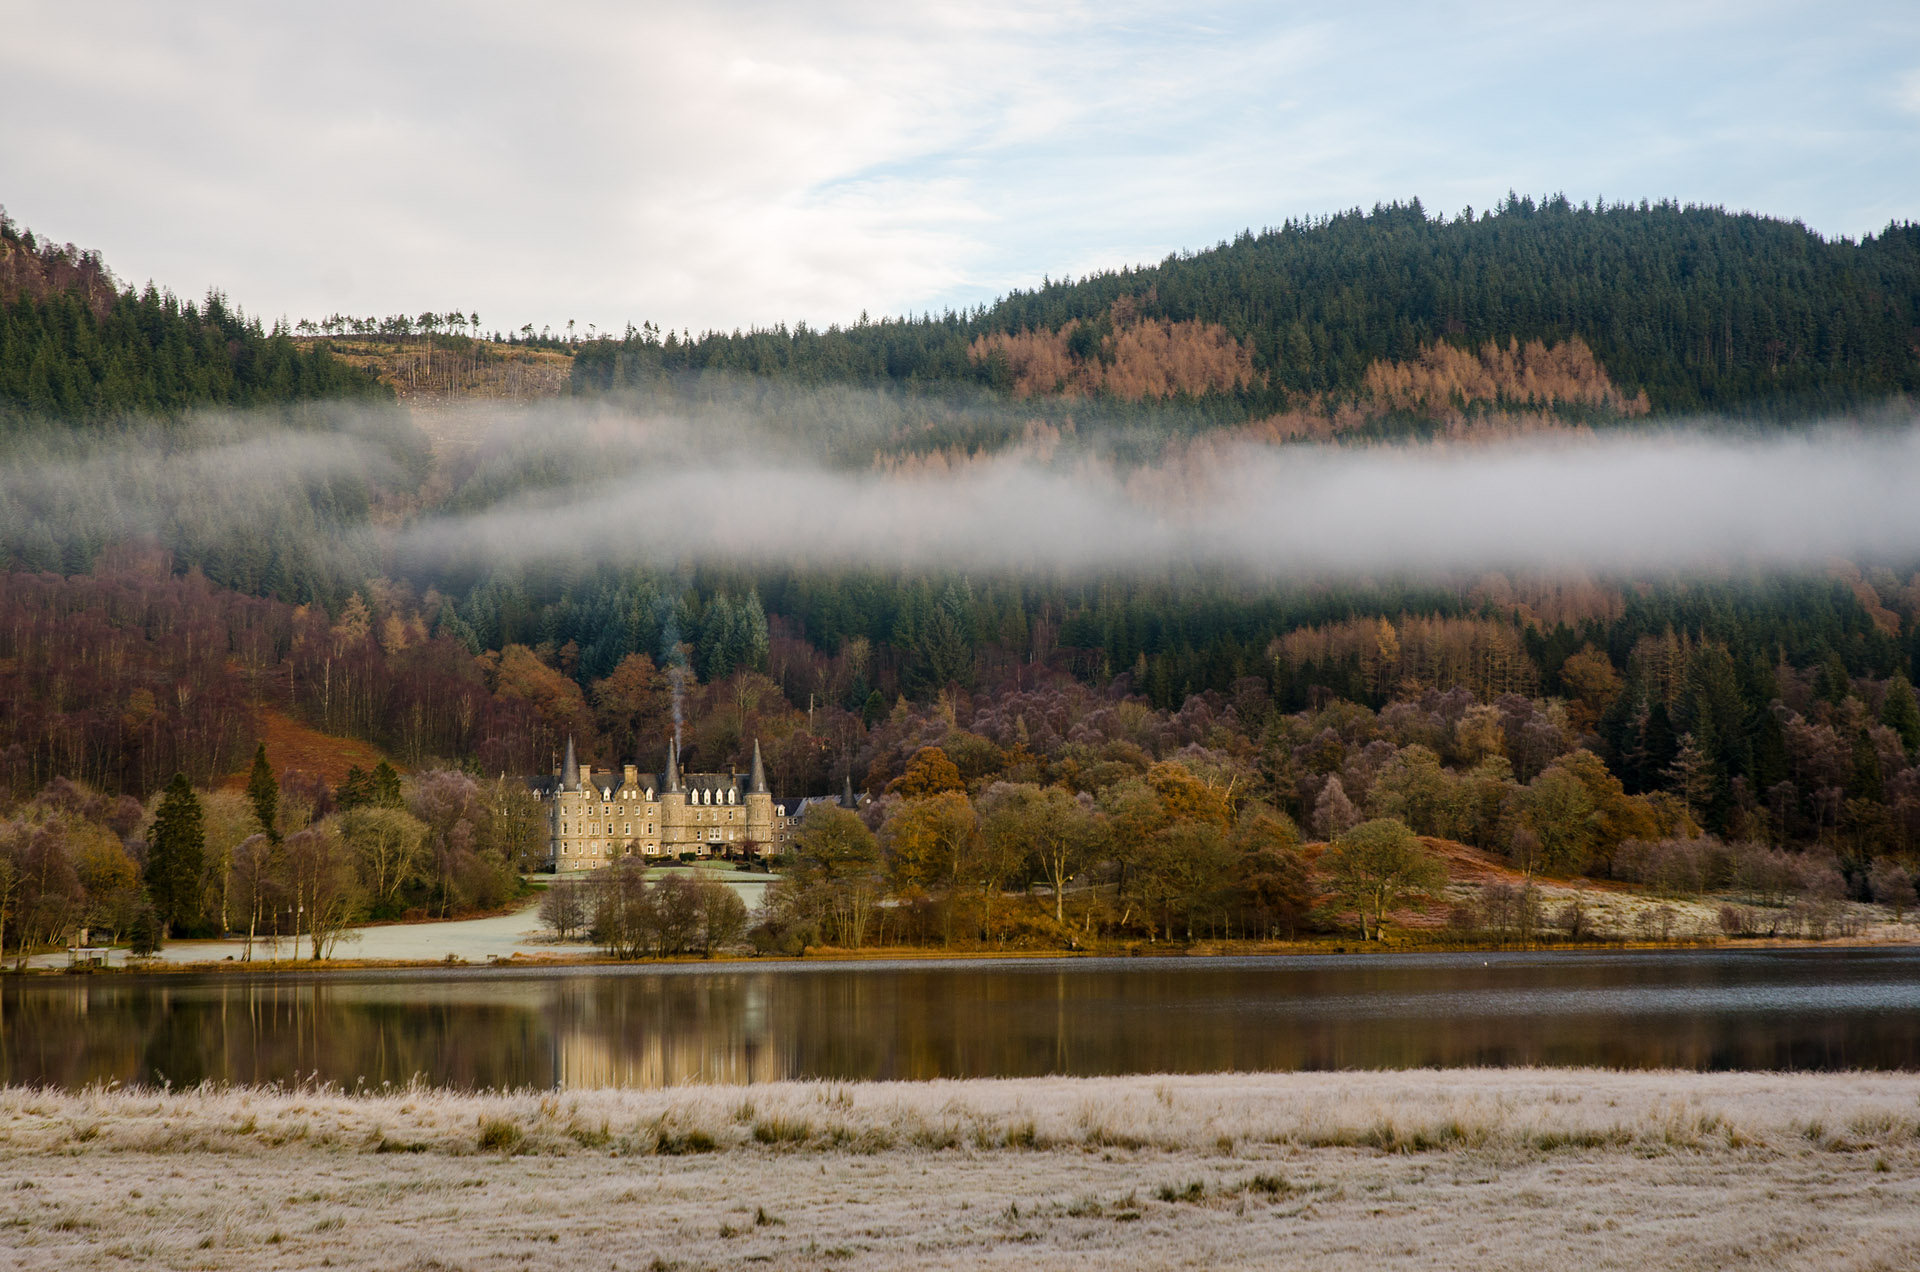 Tigh Mor Trossachs ('big house in the Trossachs')